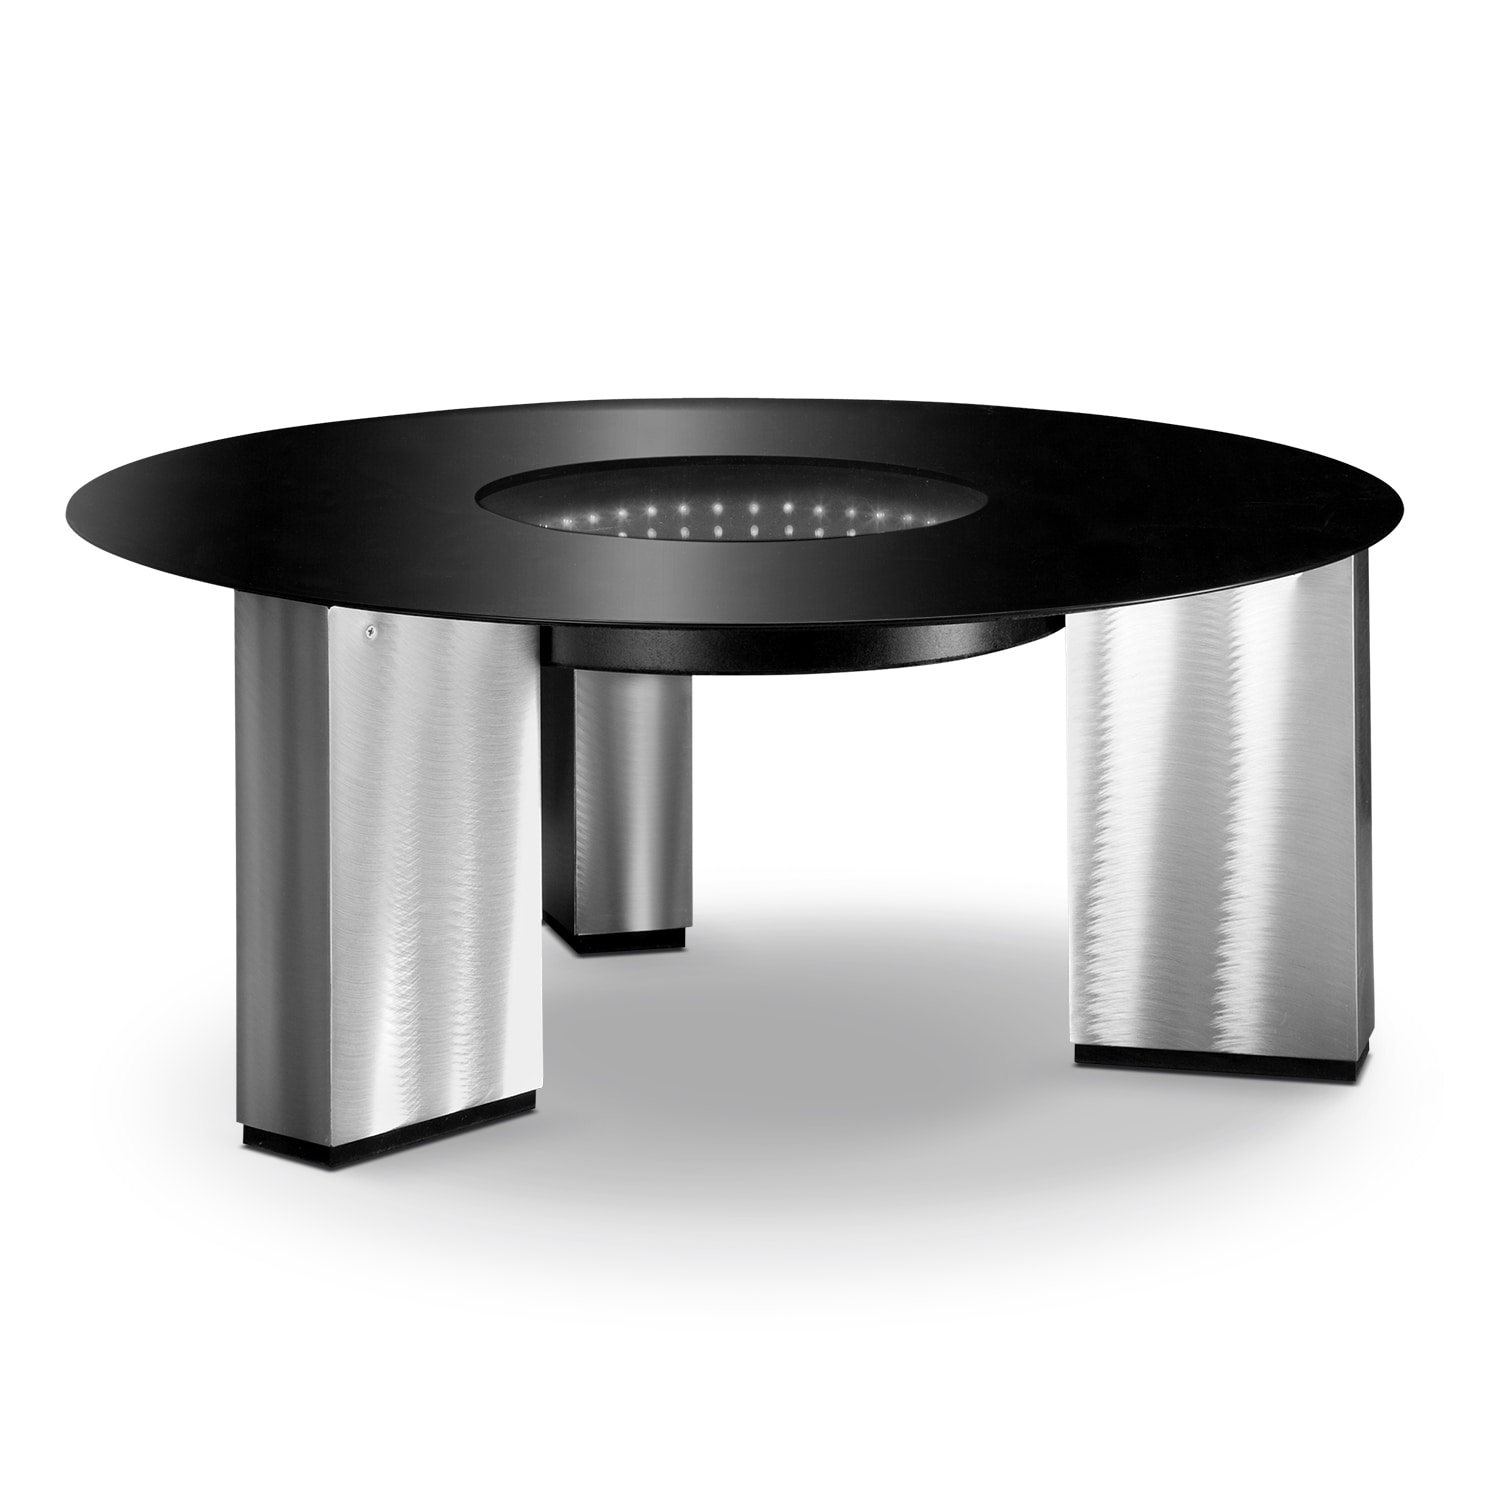 [City Lights Cocktail Table]